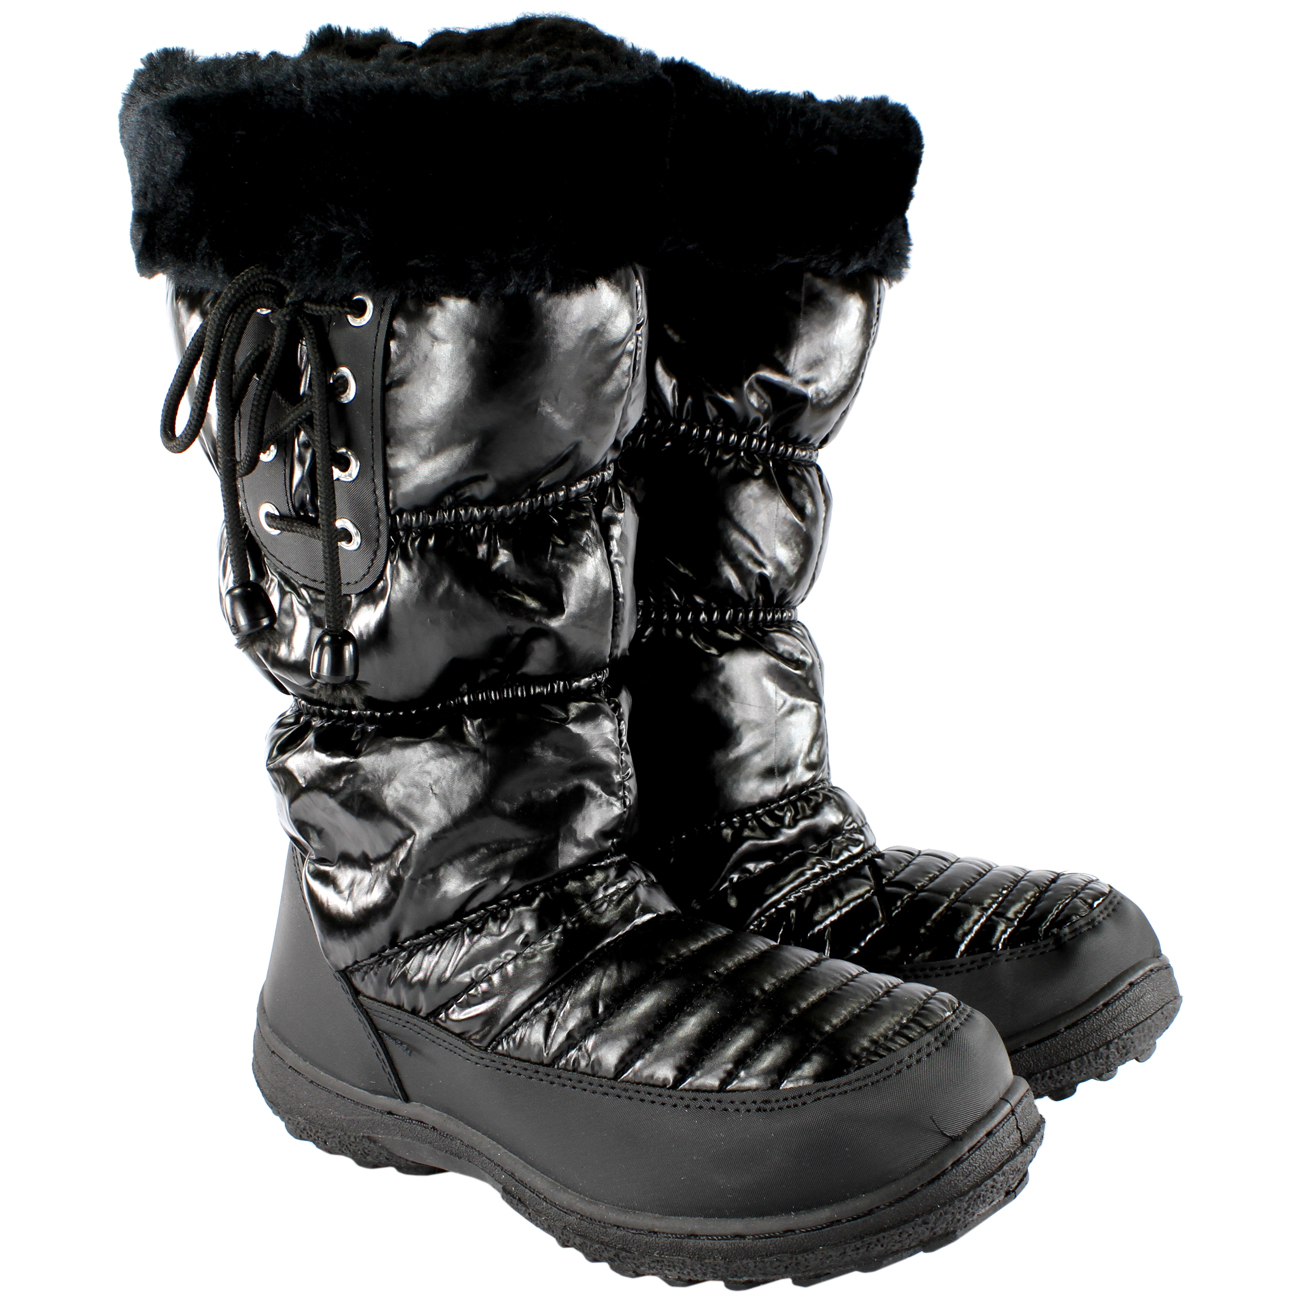 Mid Calf Waterproof Snow Boot